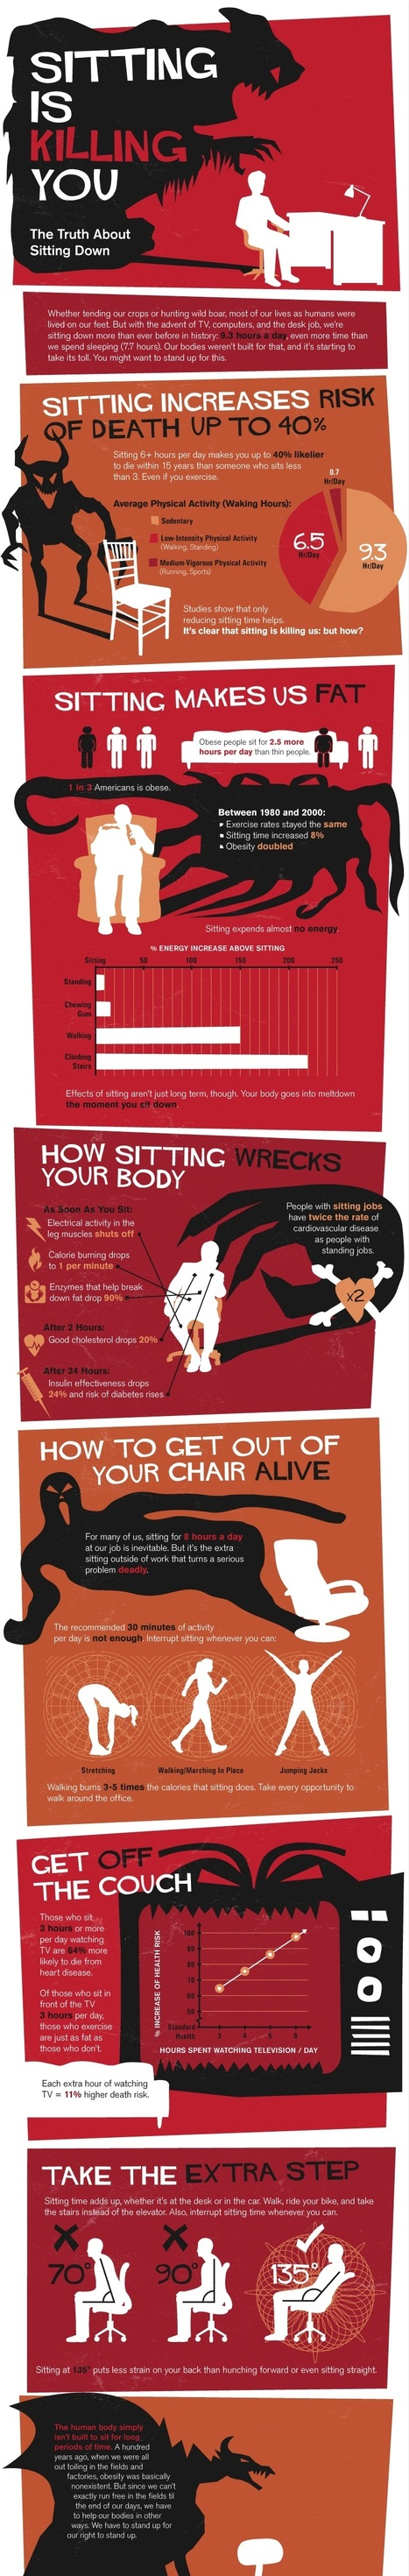 Why Sitting is Killing You | Life @ Work | Scoop.it